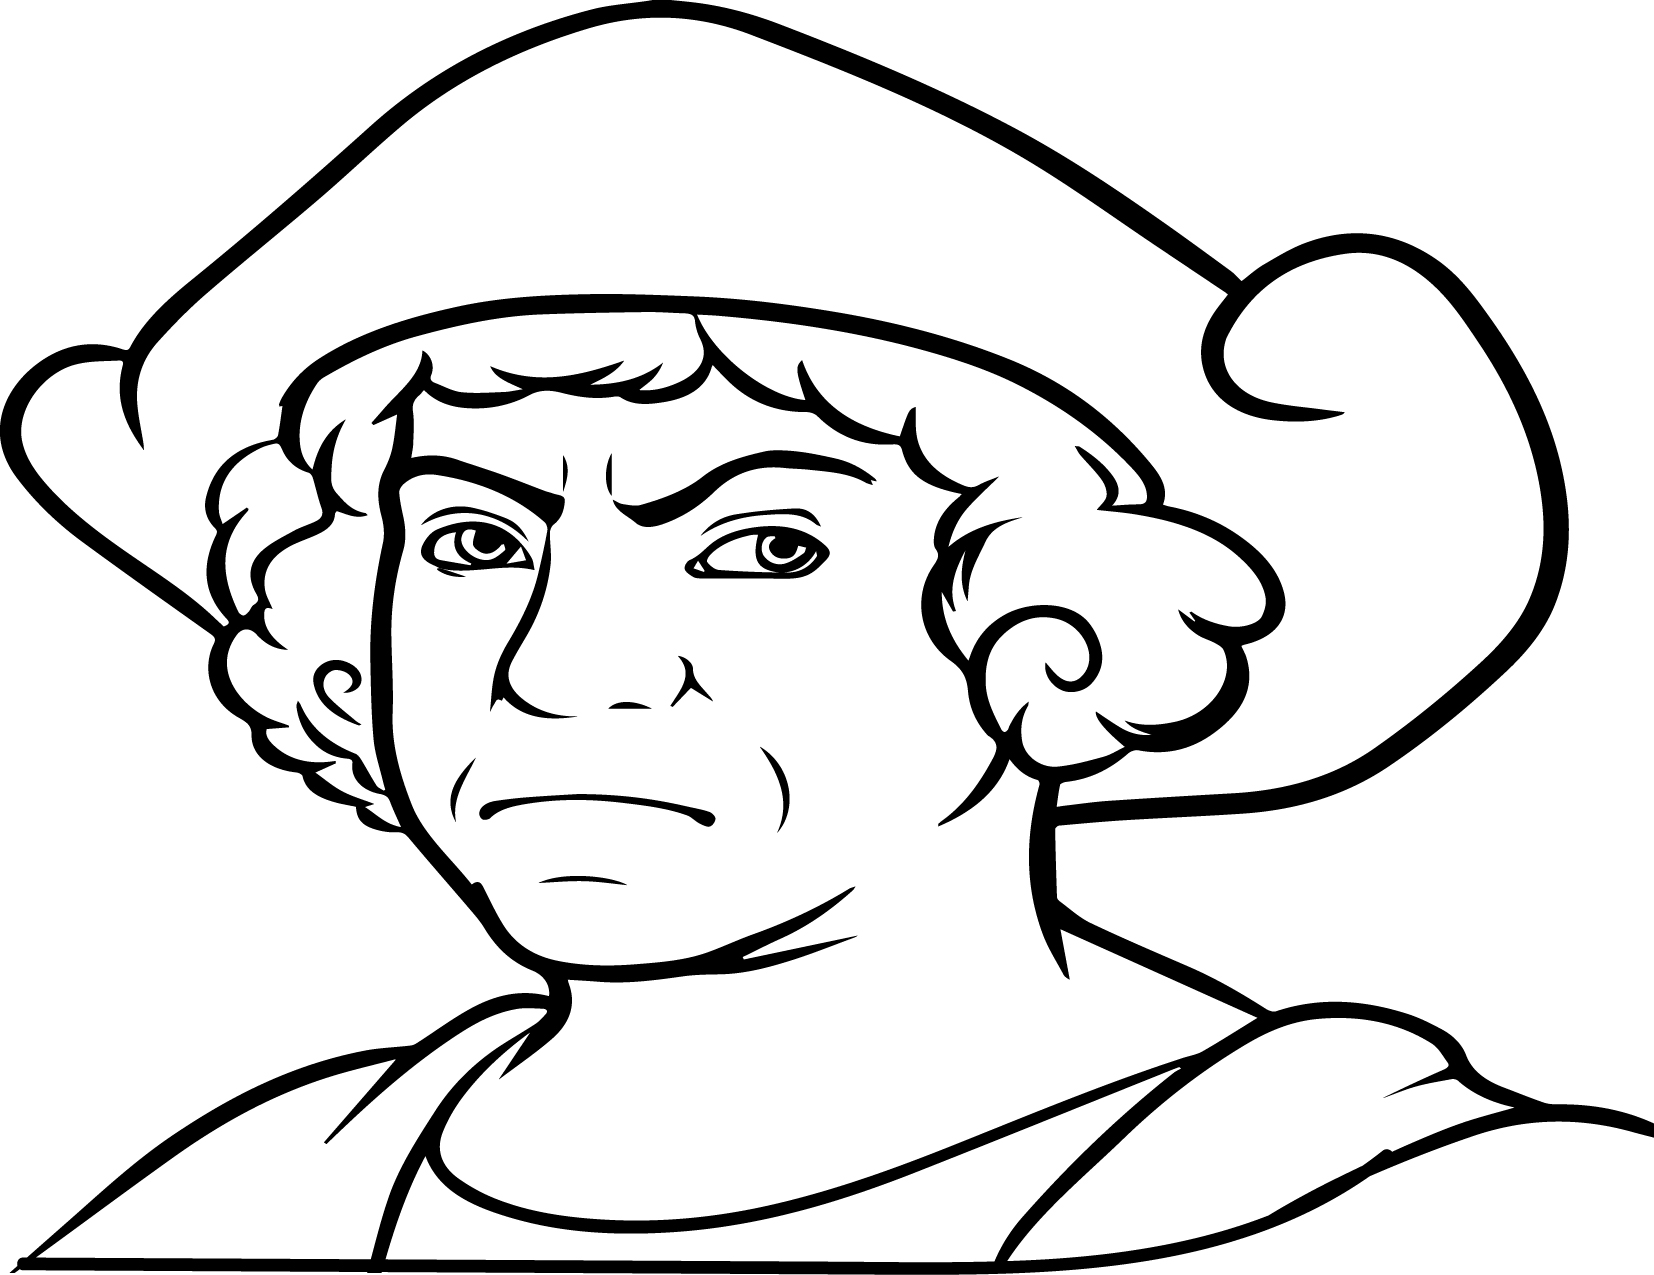 Christopher Columbus Coloring Pages Printable Coloring Pages